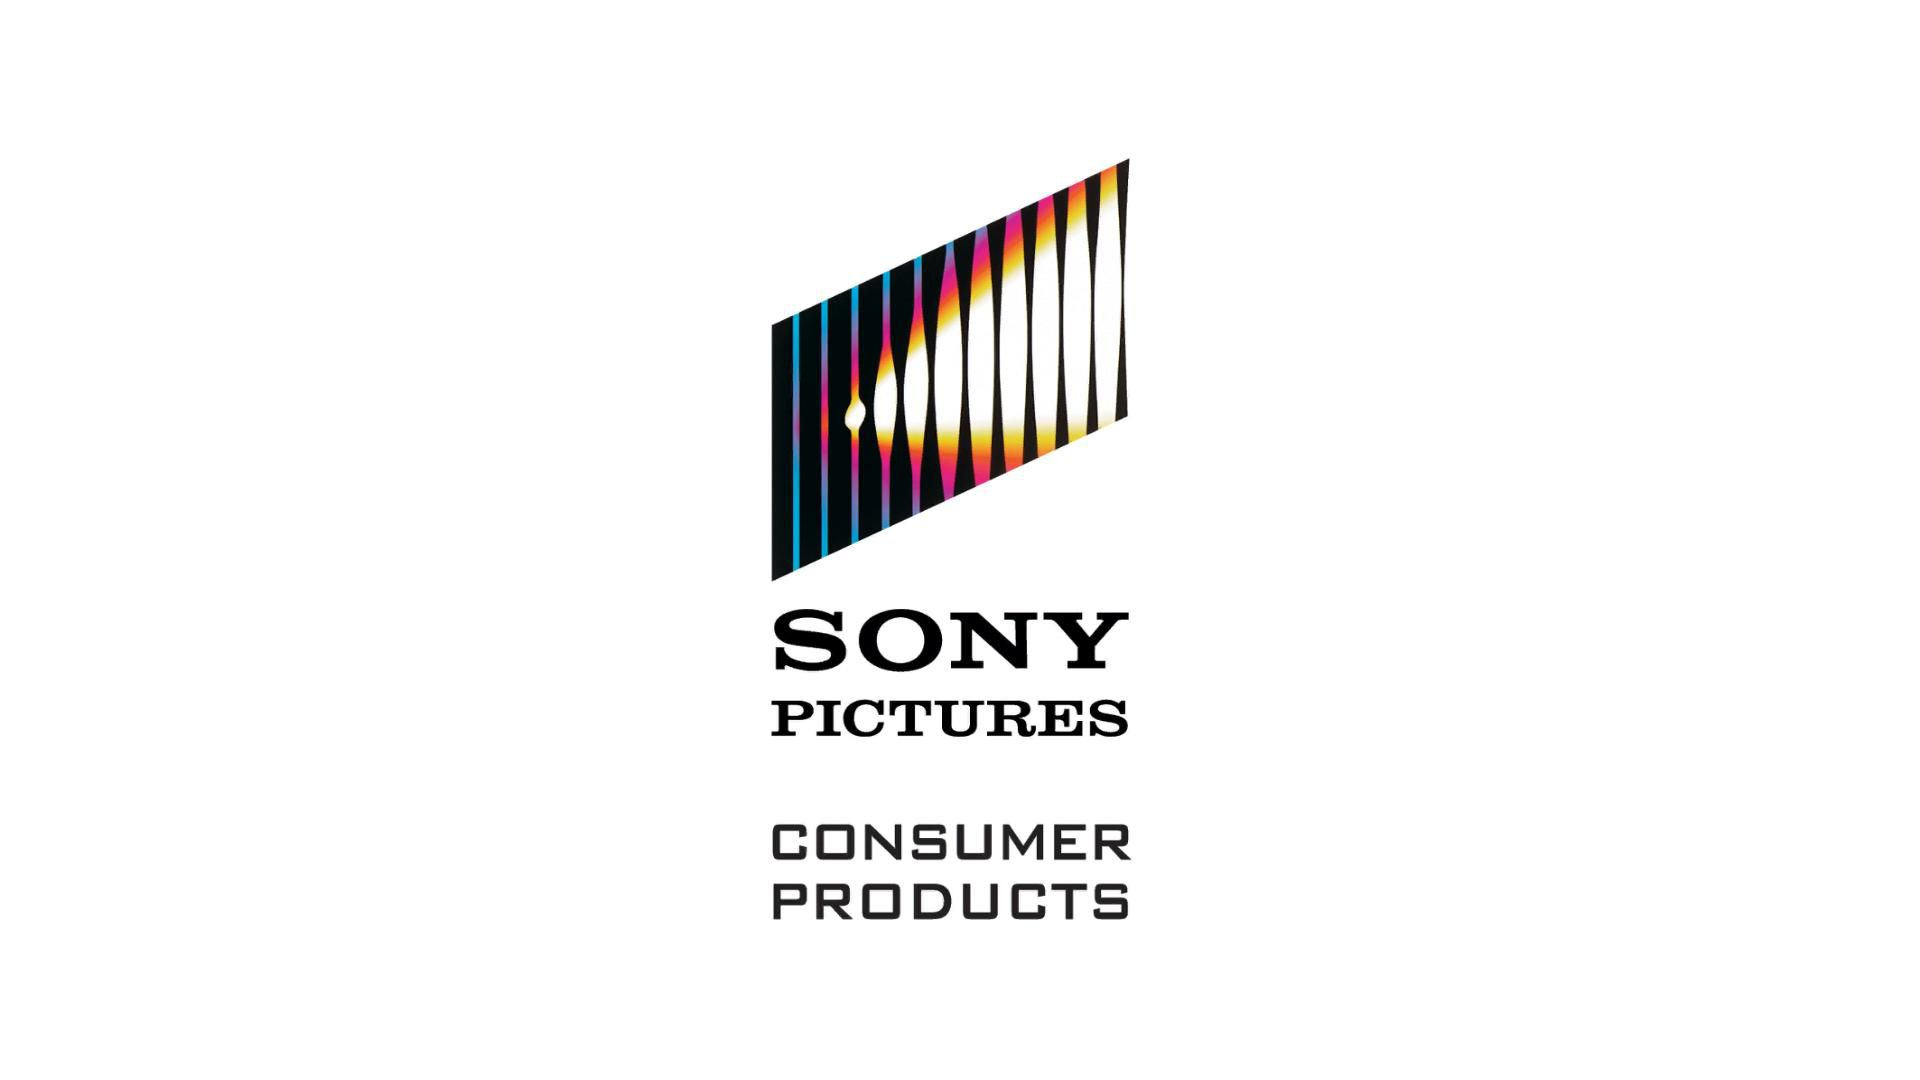 Sony Pictures Television - 3 tips de 481 visitantes - Foursquare Sony pictures mexico corporativo